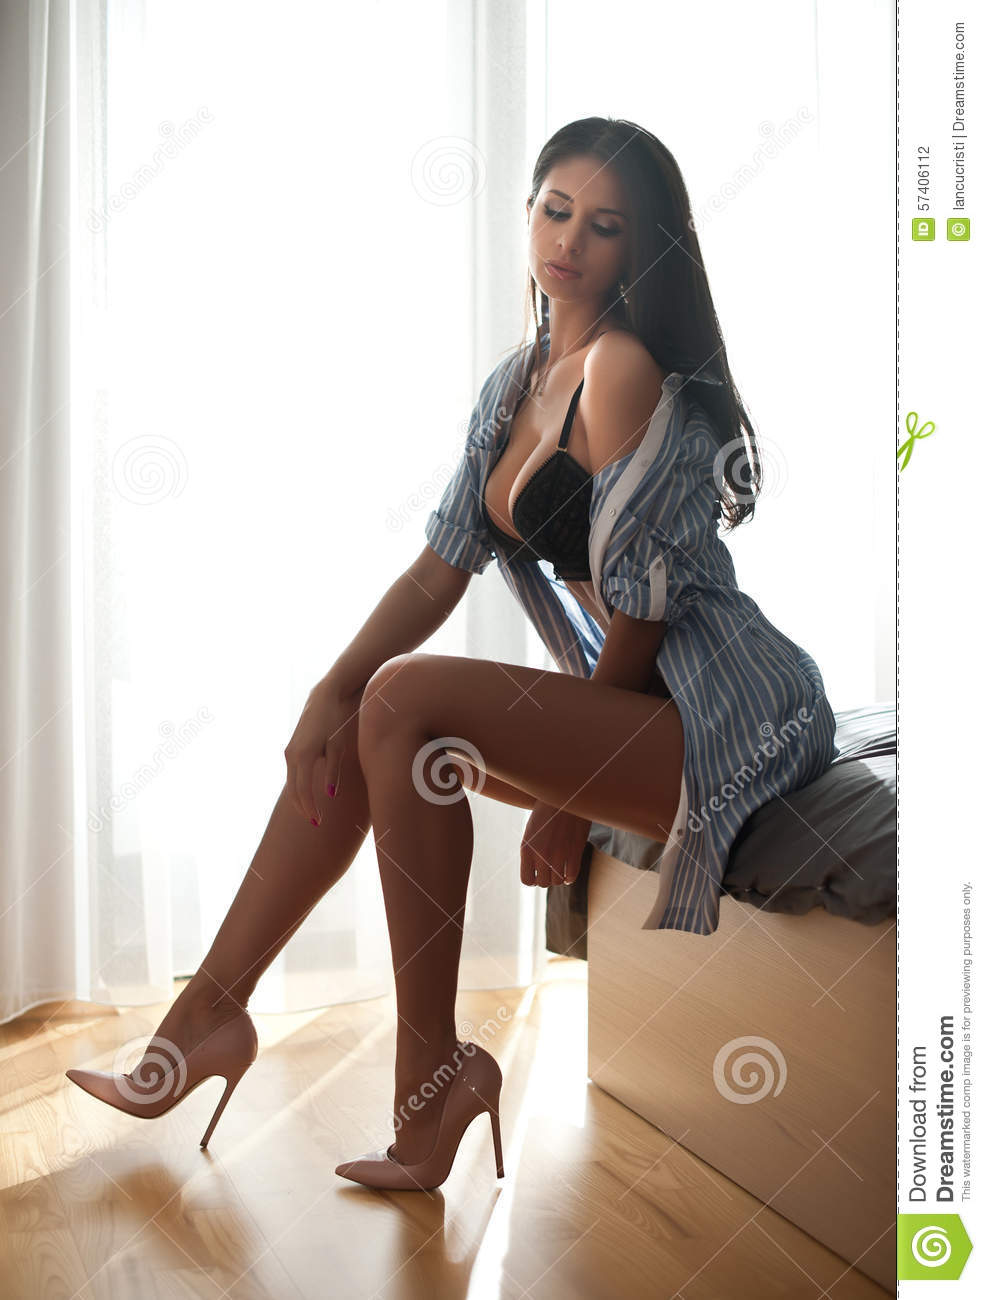 Excellent words hot brunette women in lingerie are